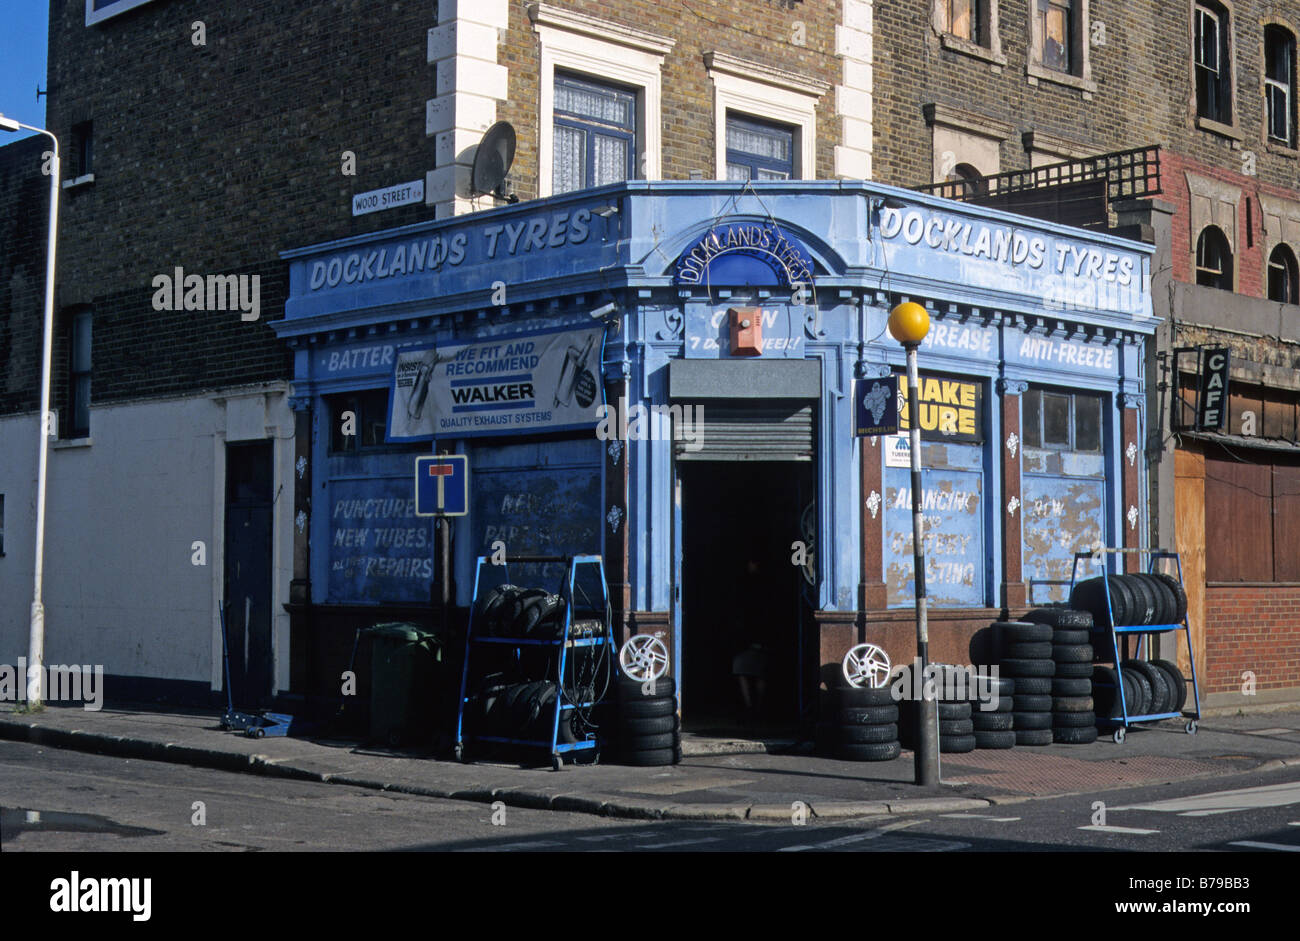 Tyre shop in Victoria Dock Road, London E16. - Stock Image